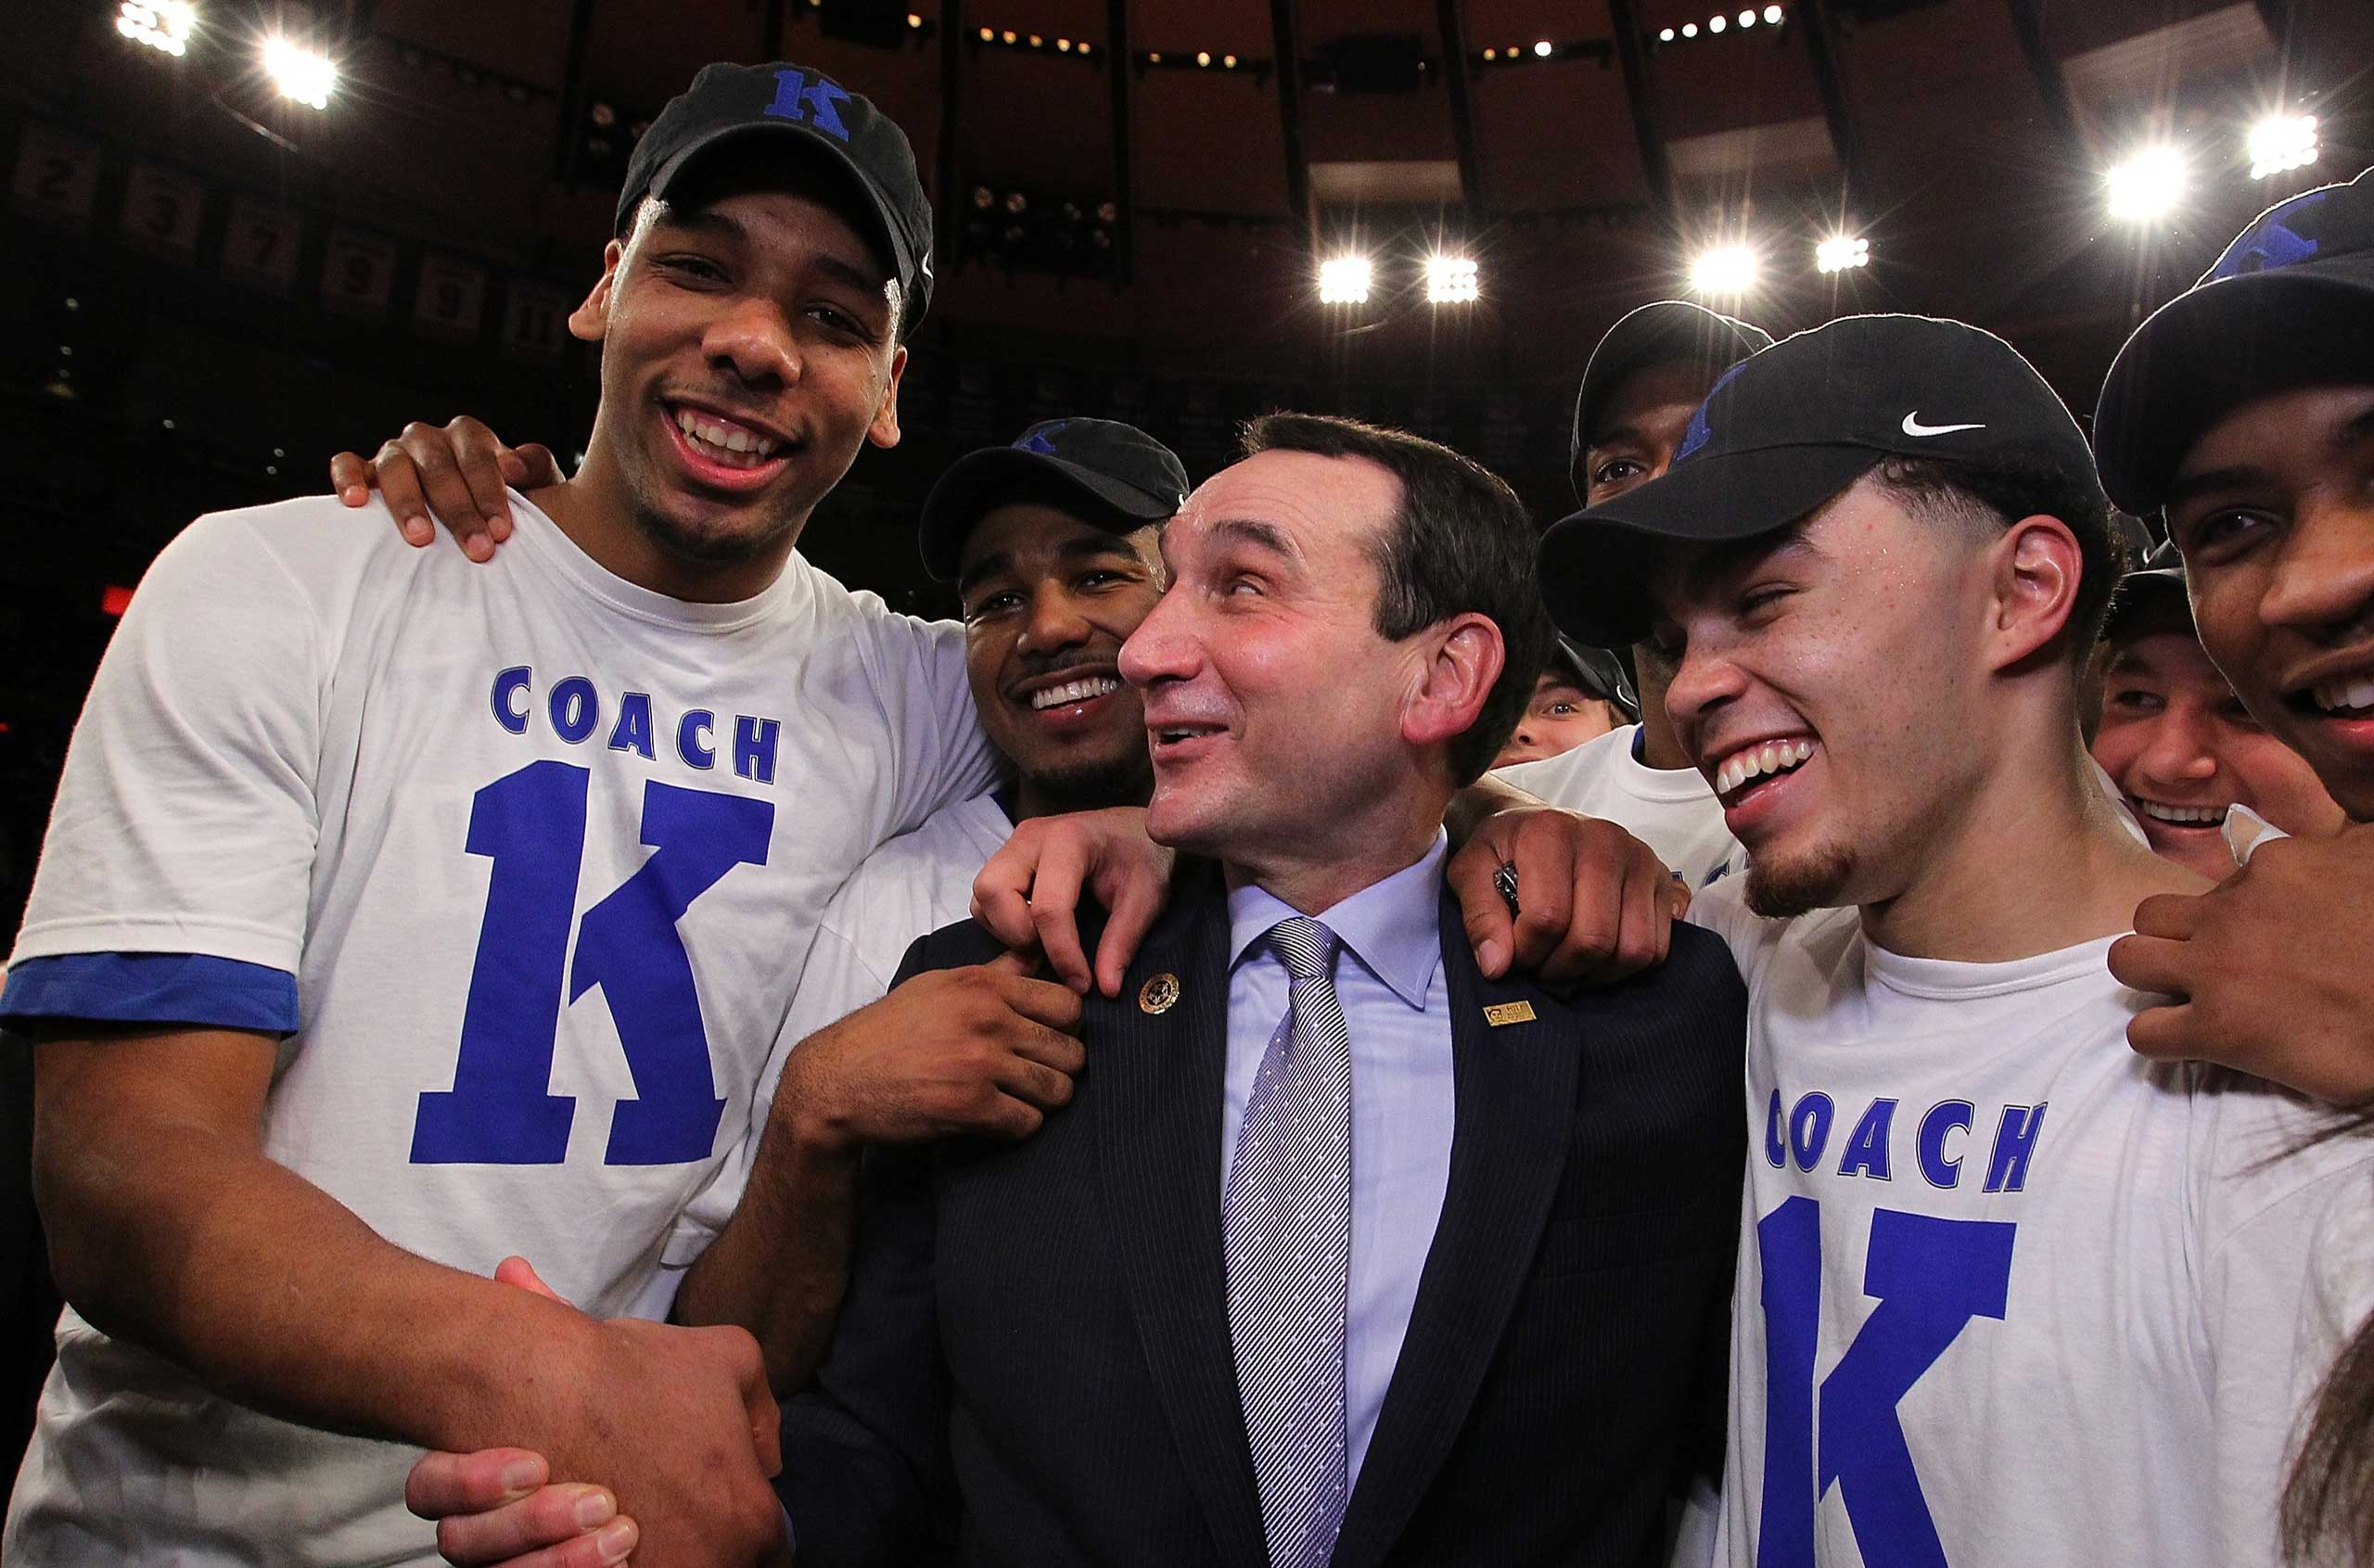 Head coach Mike Krzyzewski of the Duke Blue Devils celebrates with teamates after his 1000th career win after the game against the St. John's Red Storm at Madison Square Garden on January 25, 2015 in New York City.